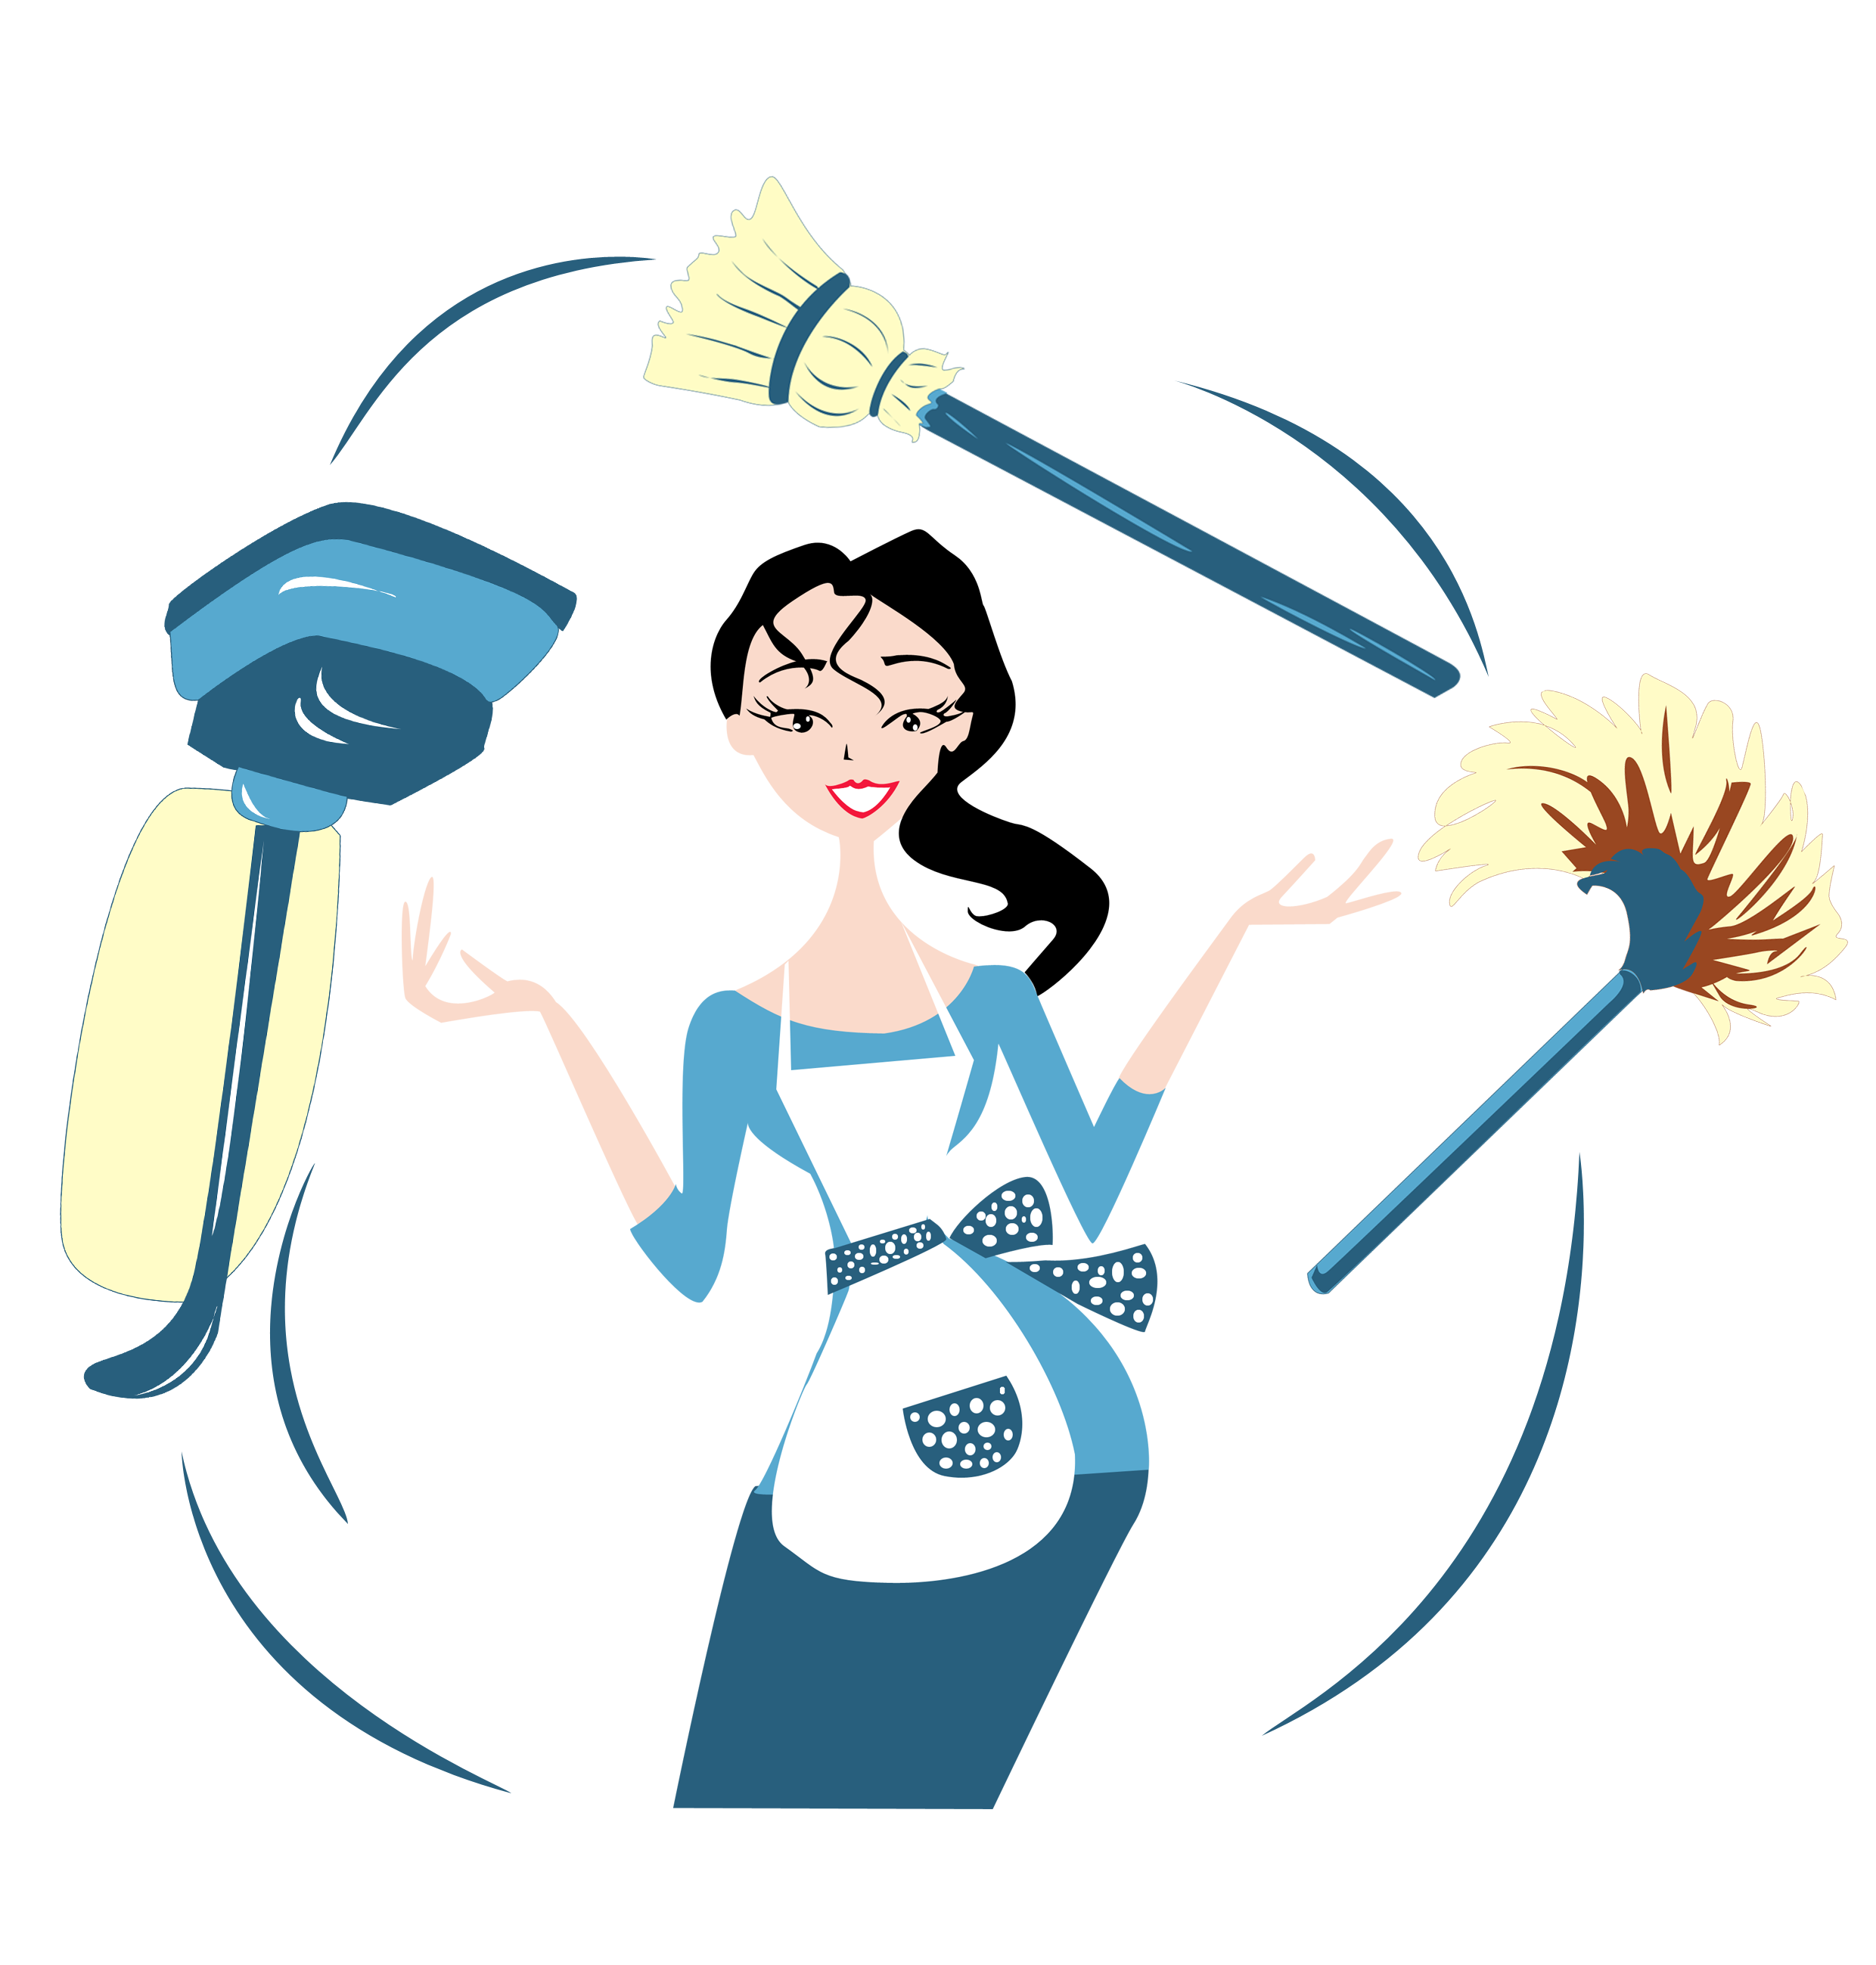 Maid clipart washing dish. Lalocamaid cleaning services in